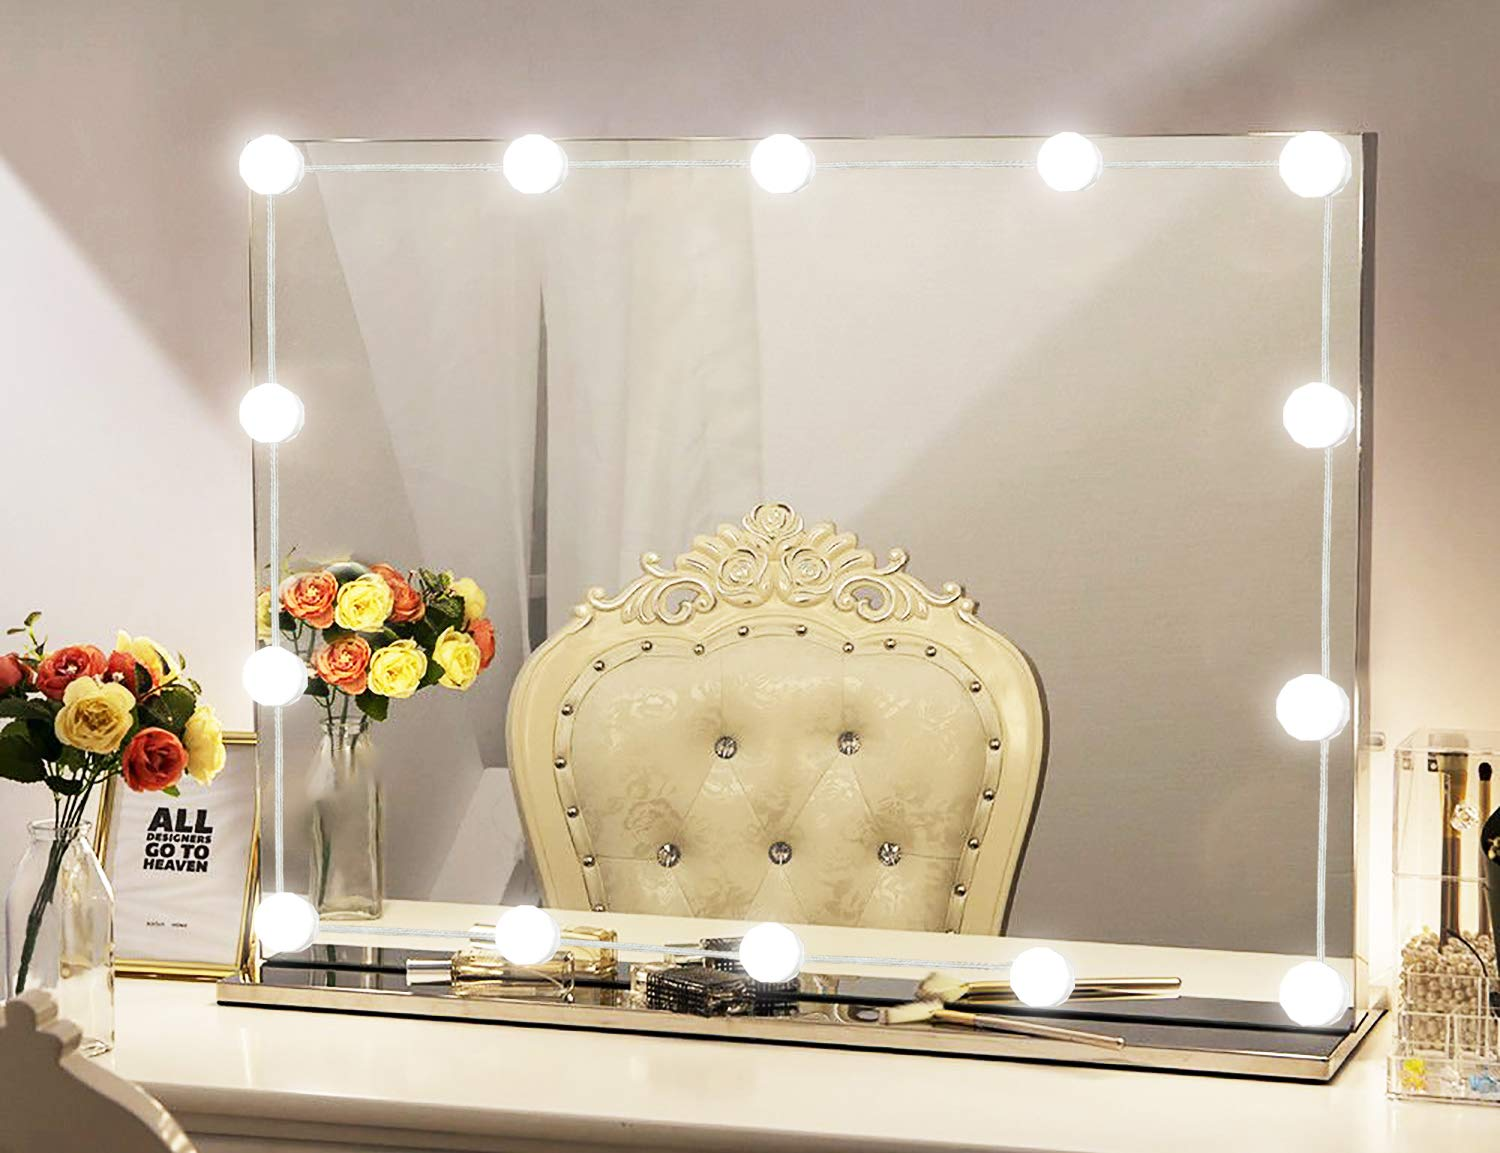 XBUTY Vanity Mirror Lights Kit Hollywood Style 14 Dimmable LED Light Bulbs Warm White to Daylight Tunable, Linkable Lighting for Makeup Vanity Table Set Dressing Room Mirror Not Included